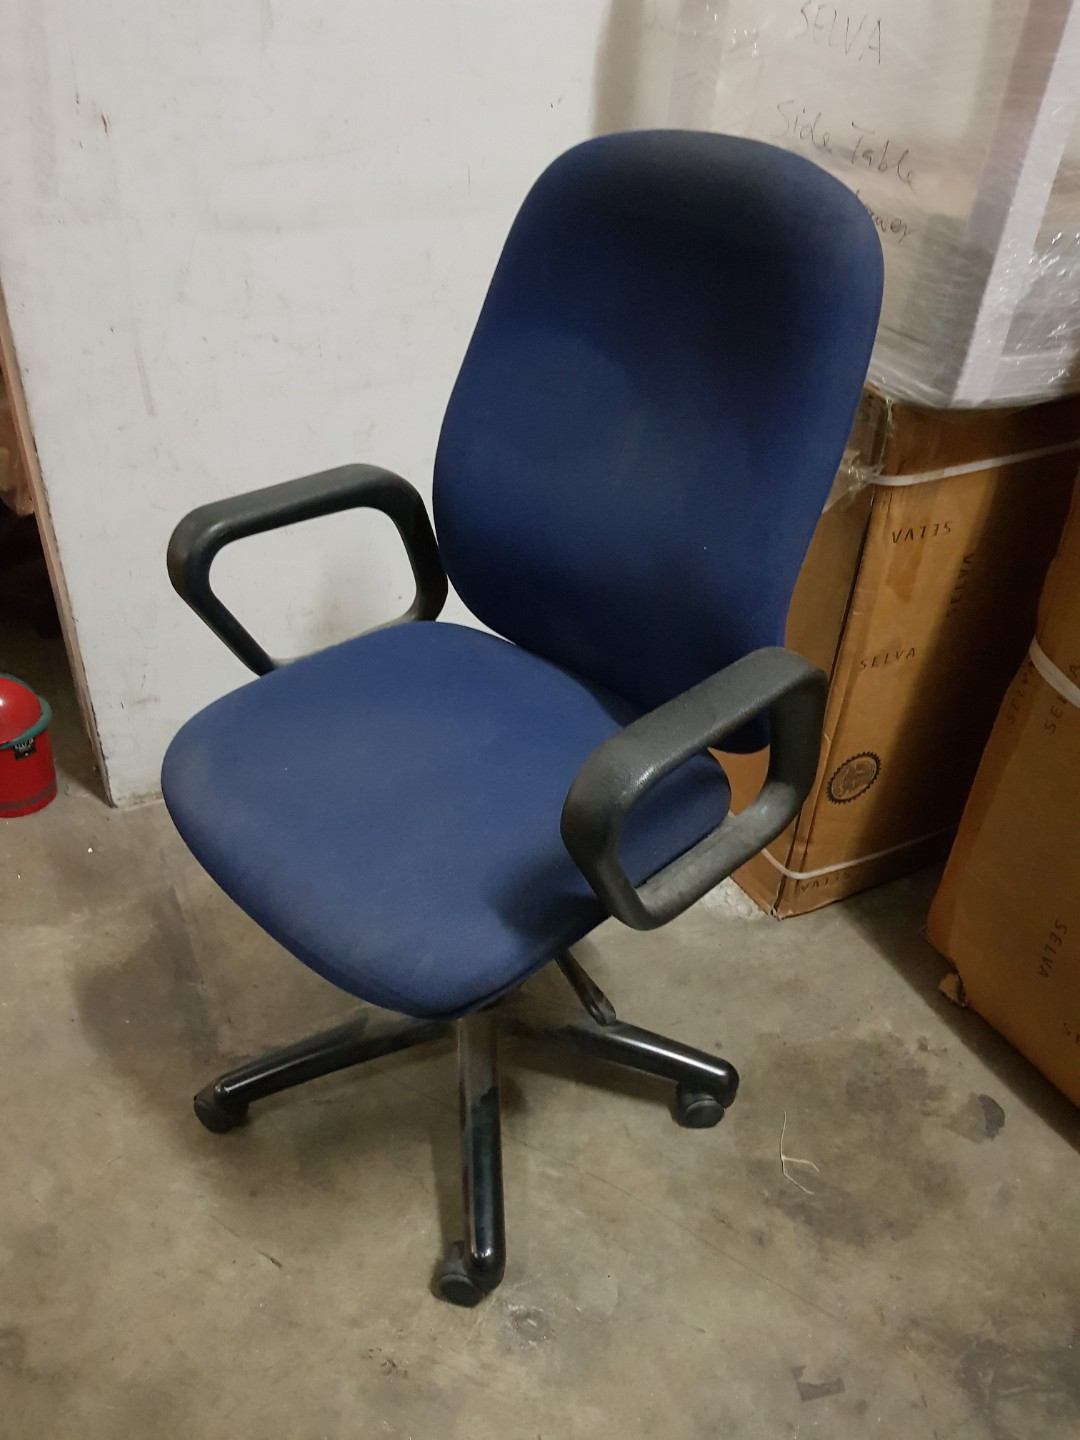 used office chair furniture tables chairs on carousell rh sg carousell com Used Office Furniture Chair Office Foot Stool